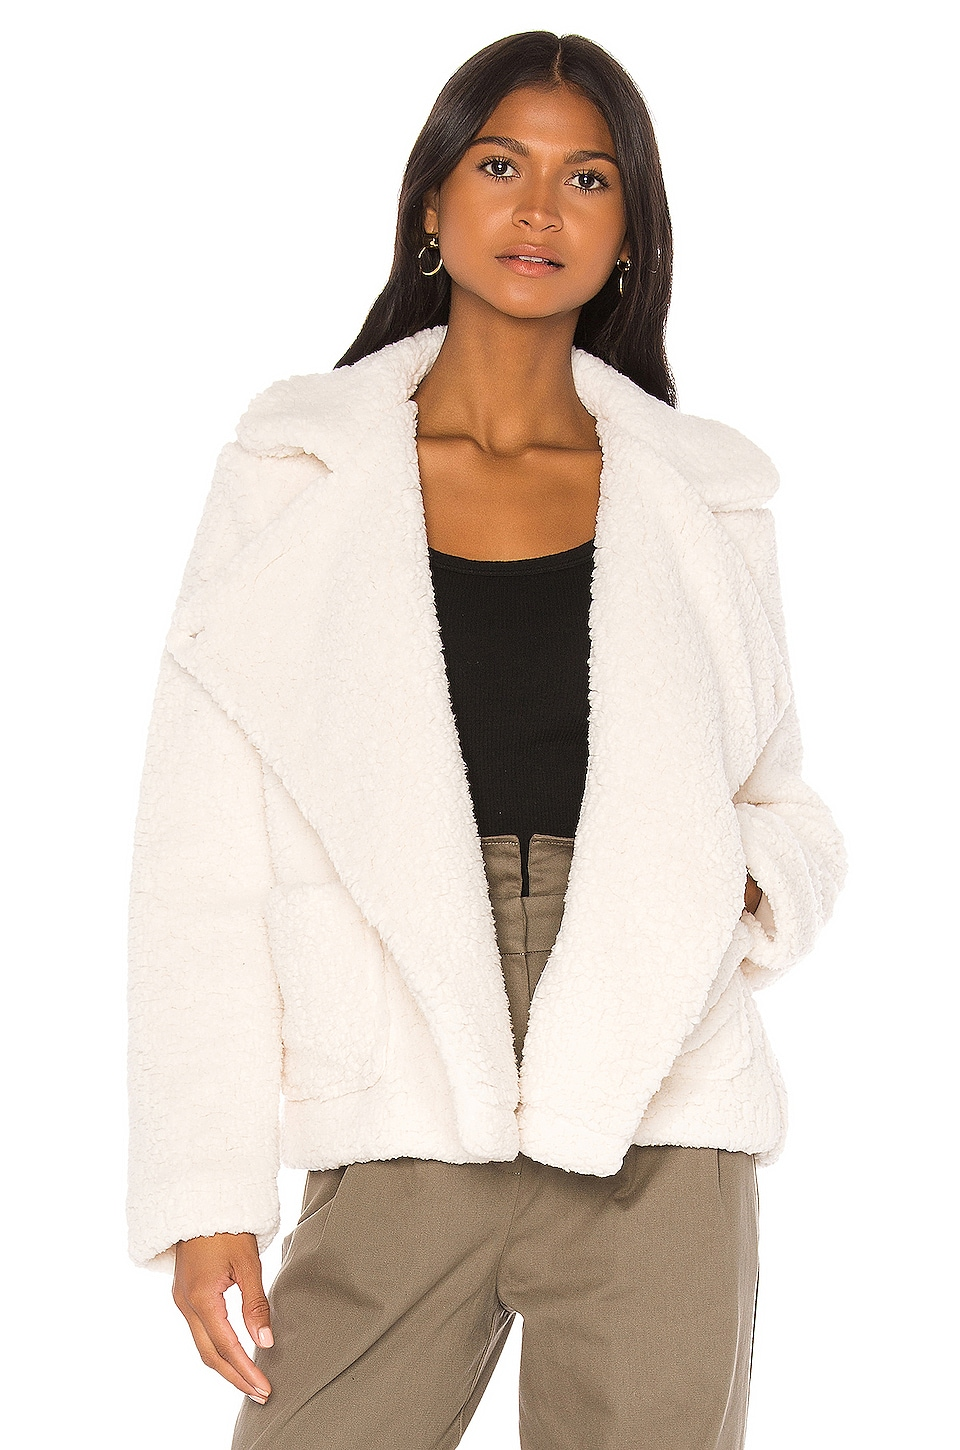 BB Dakota Soft Skills Teddy Jacket in Ivory